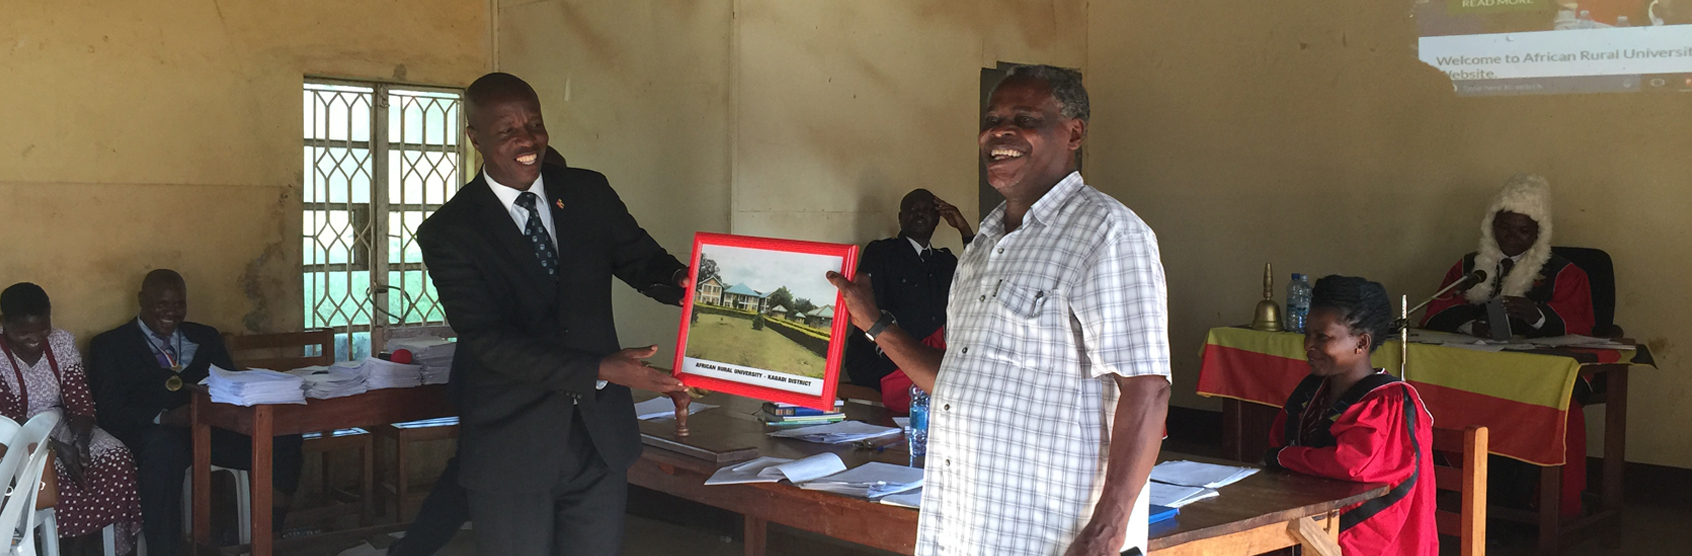 Dr. Mwalimu Musheshe Introduces ARU to Kagadi District Leadership